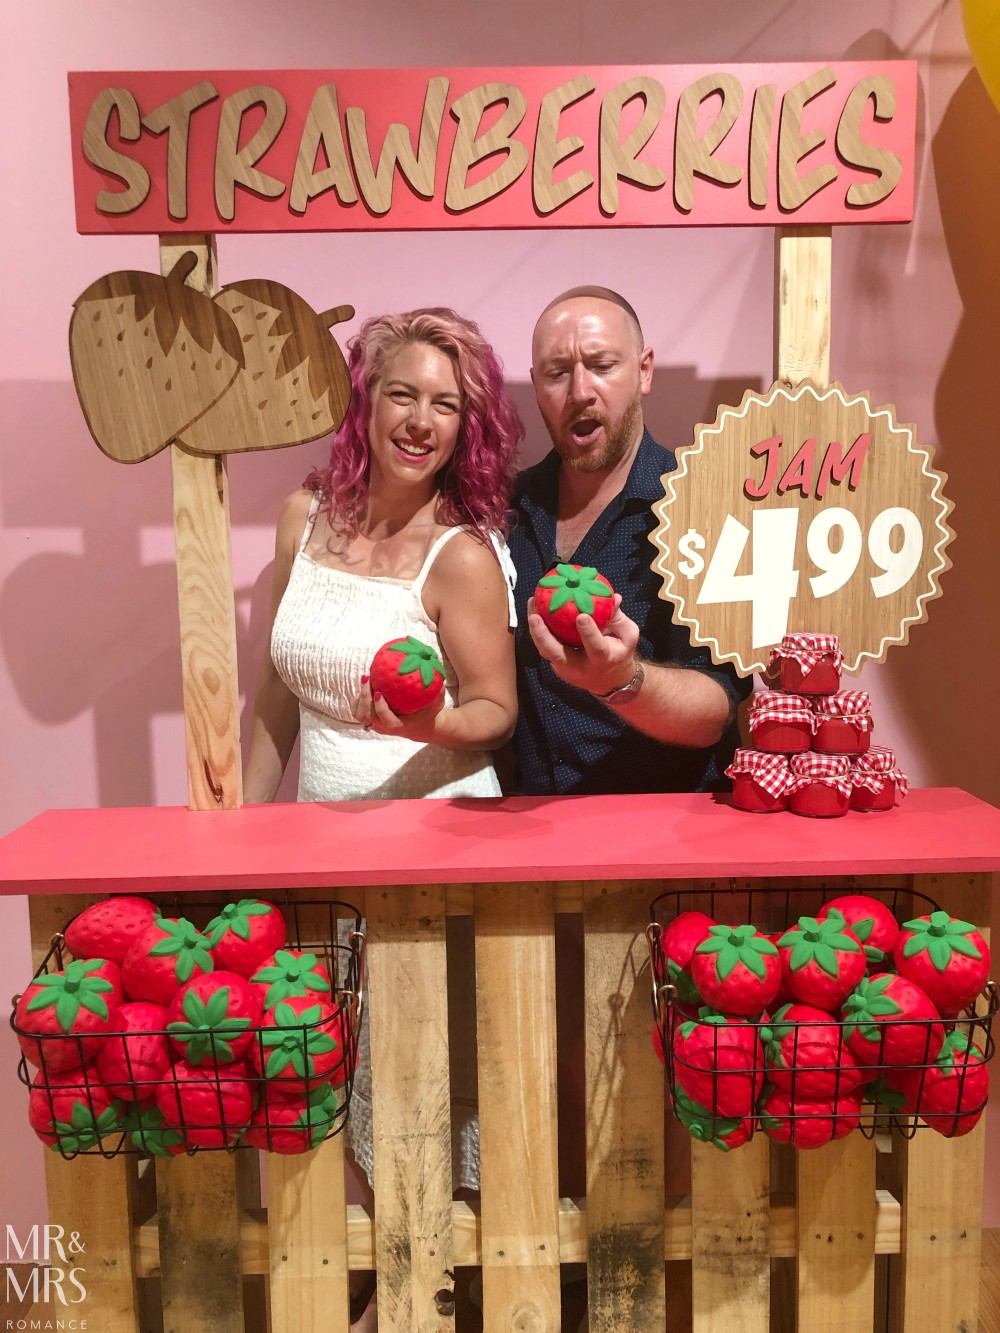 Sugar Republic, Myer Sydney - Jim & Christina strawberry stall